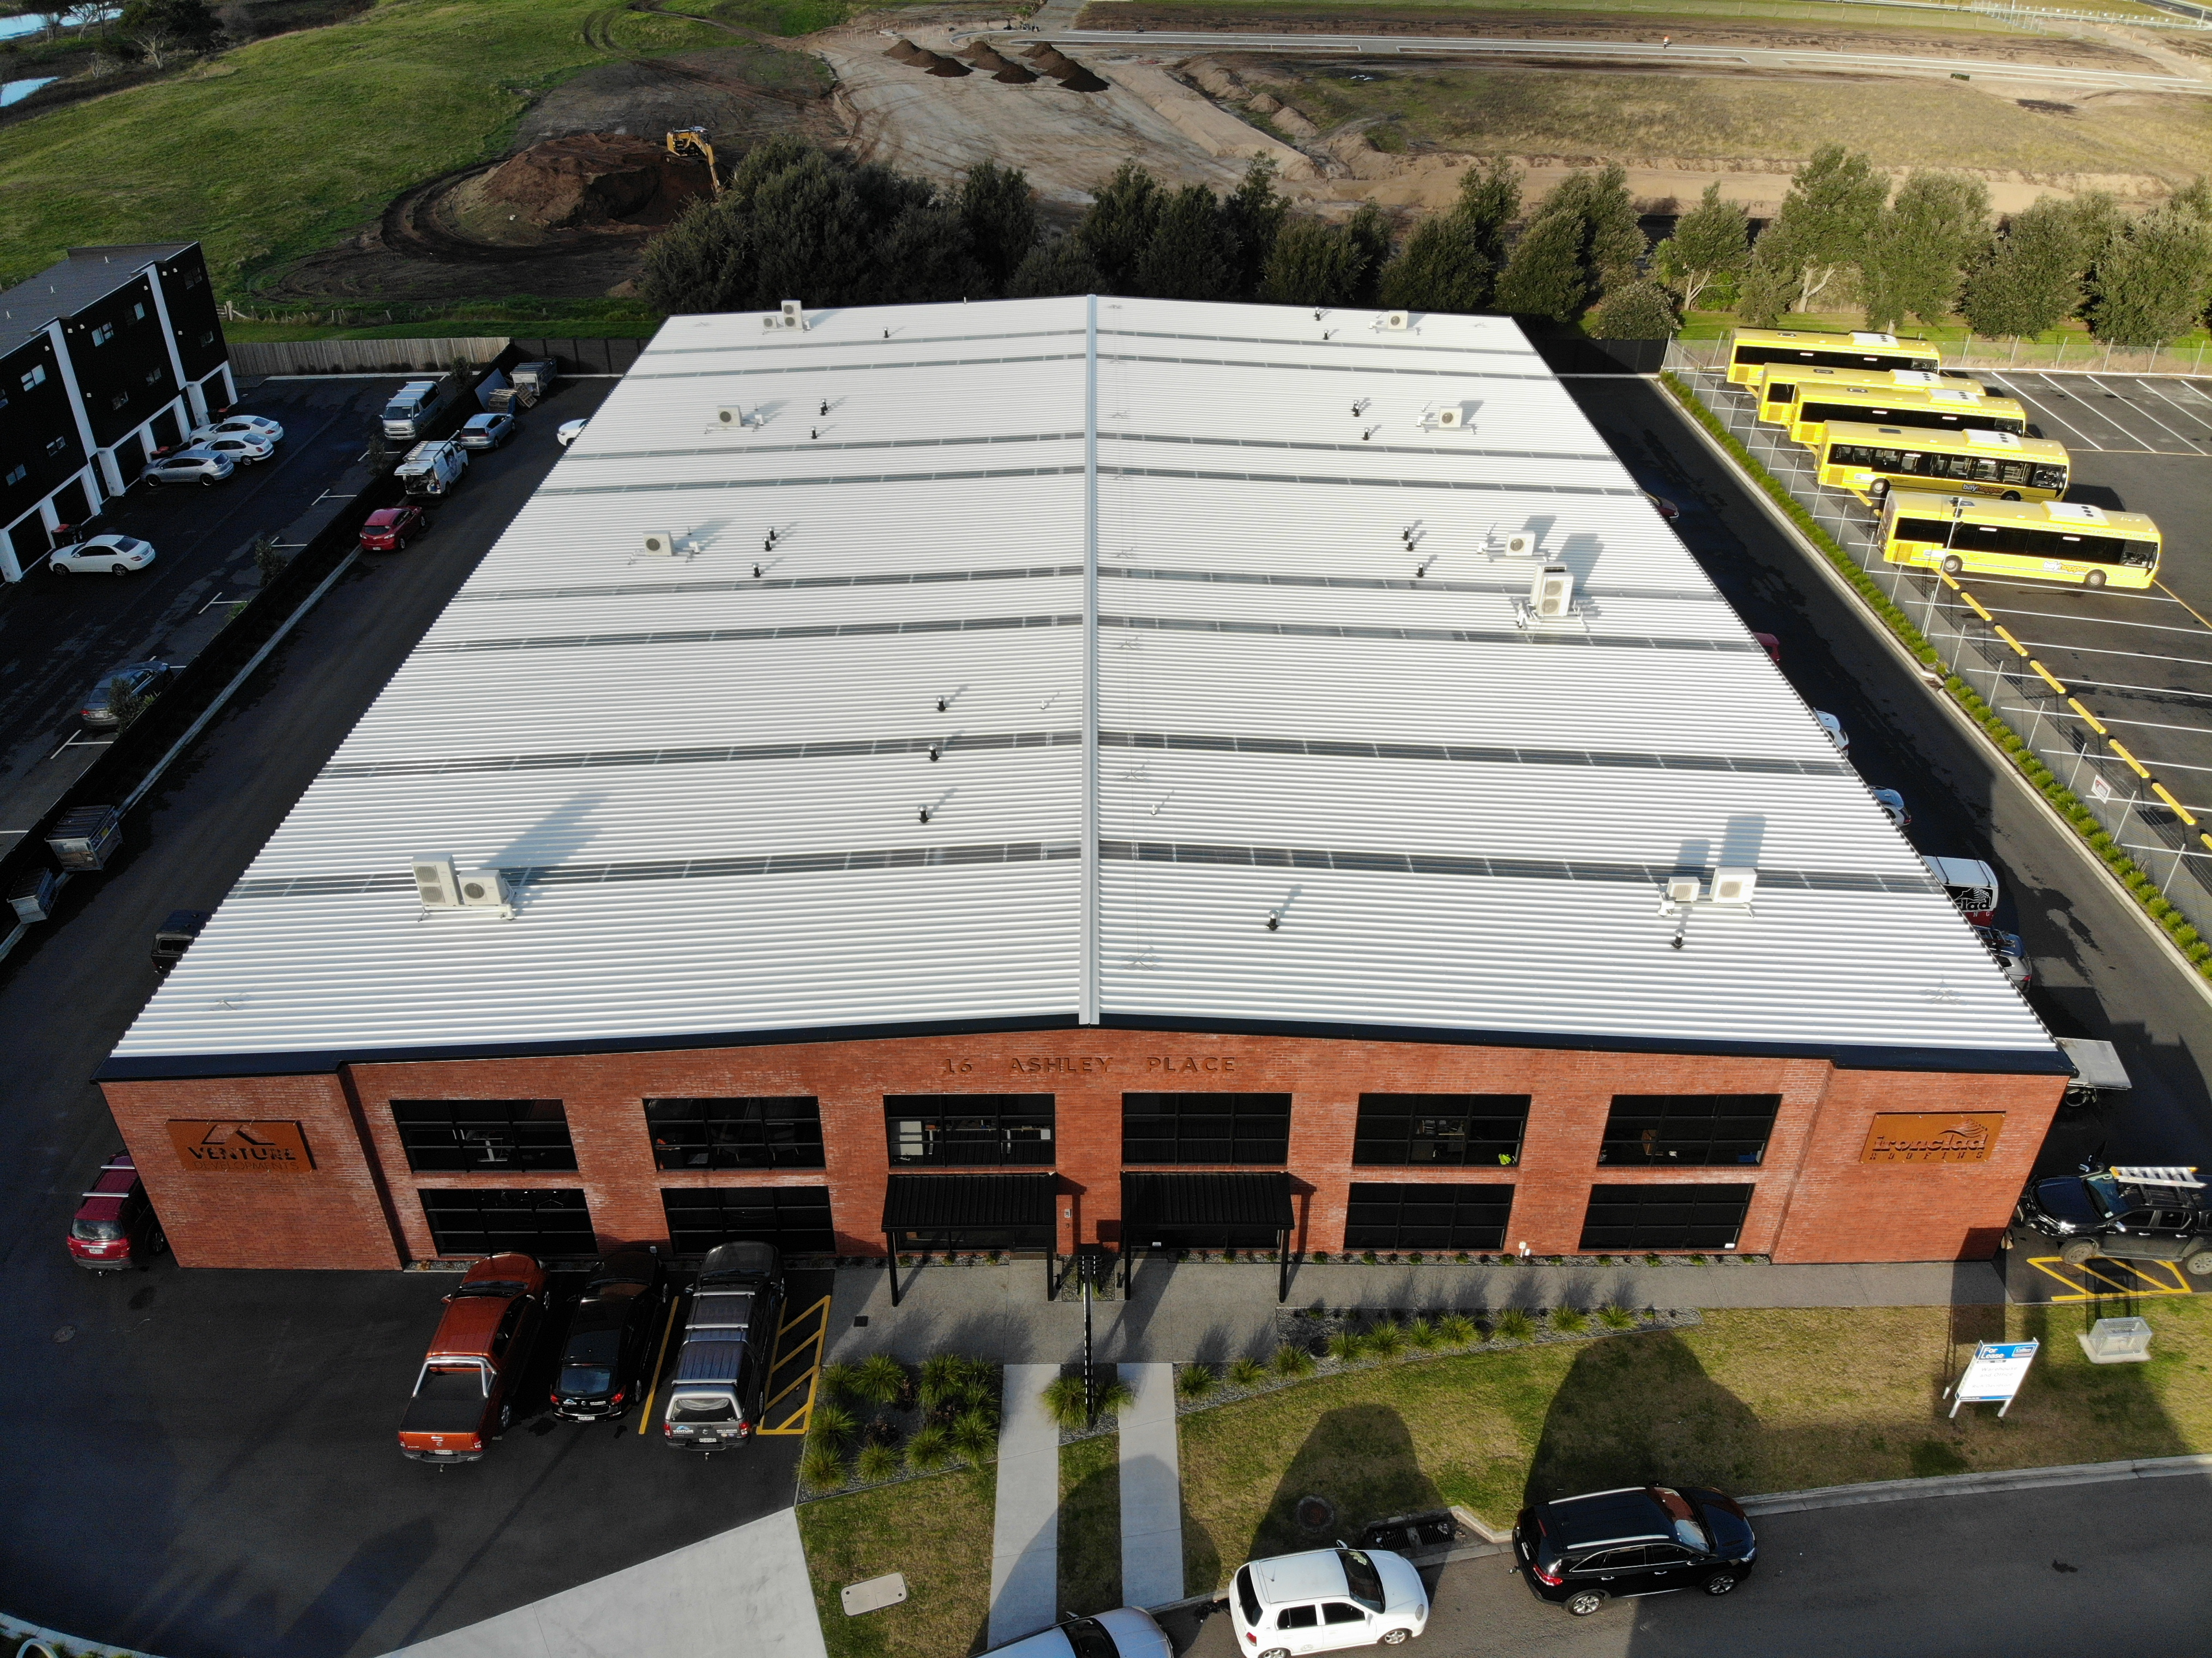 An aerial view of a large commercial building set in an industrial area, with most of the photo showing the new roof